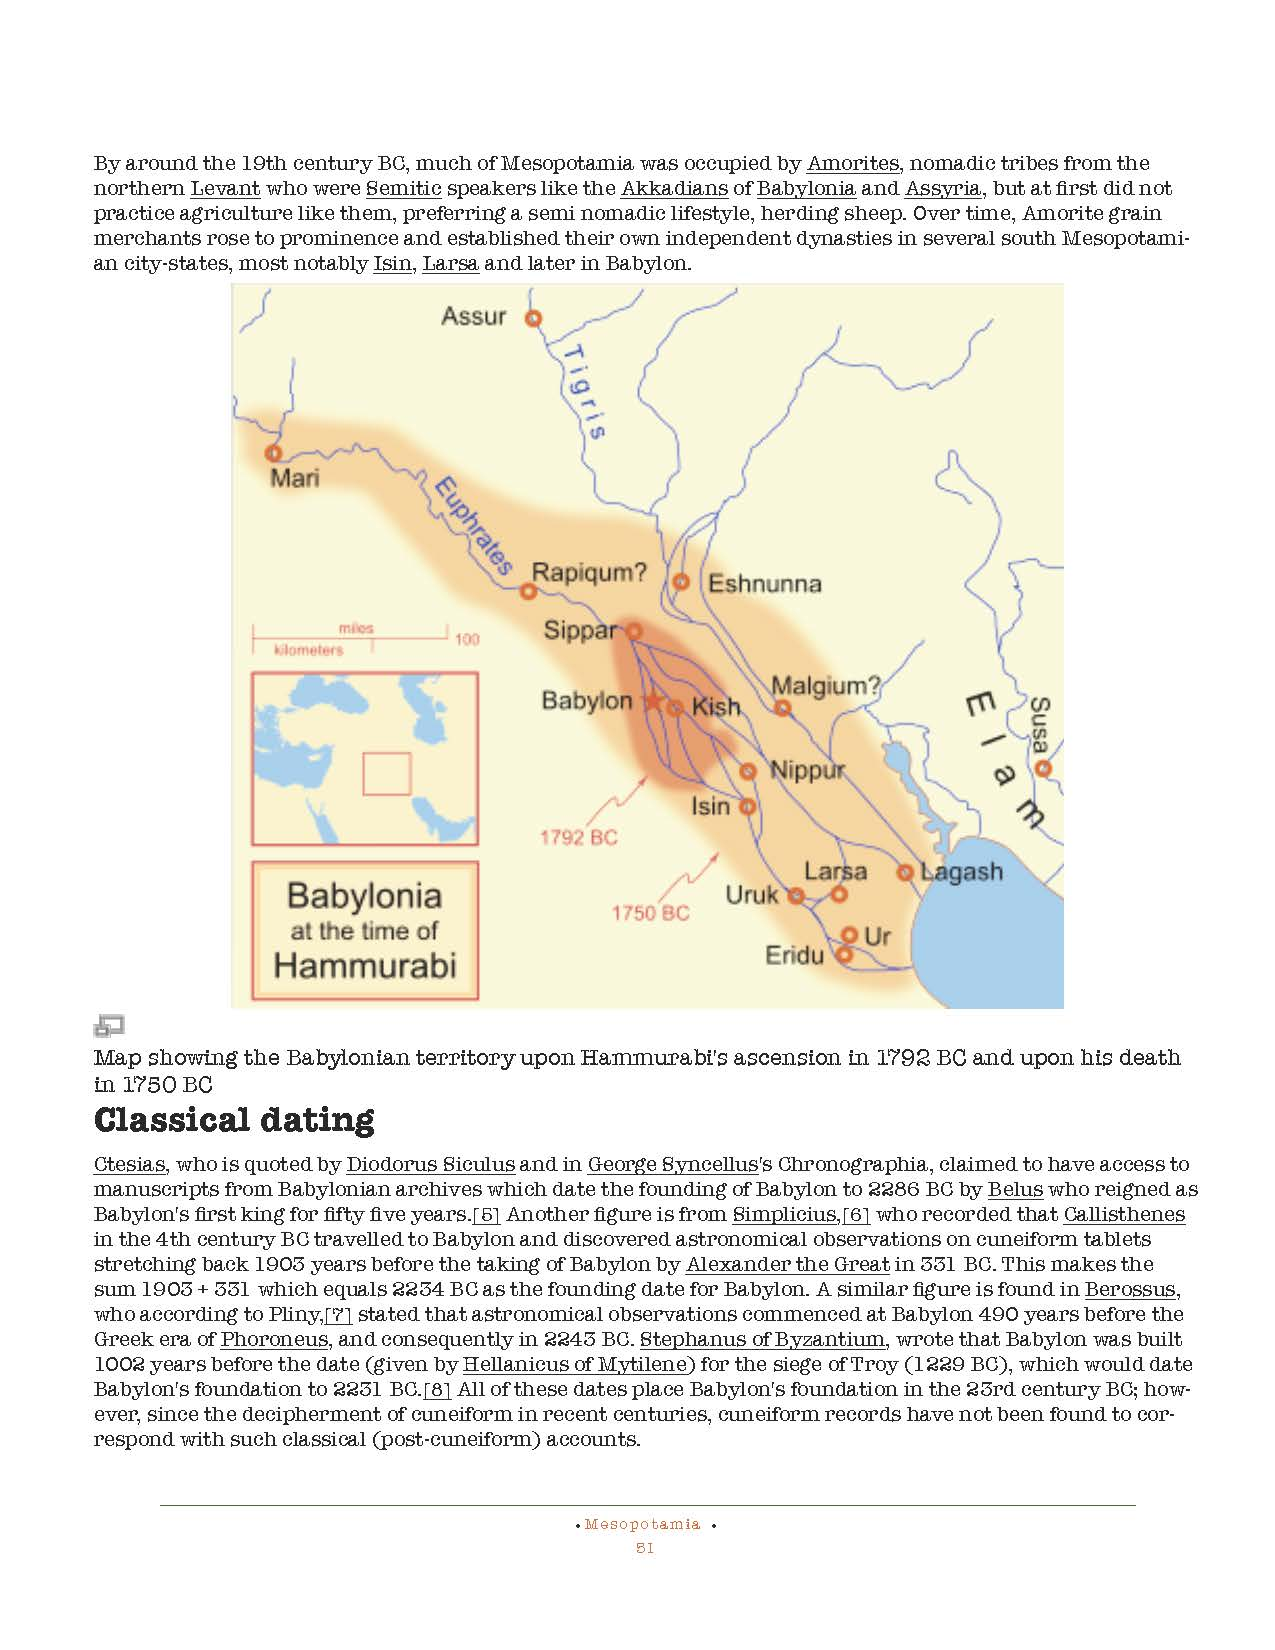 HOCE- Fertile Crescent Notes_Page_051.jpg